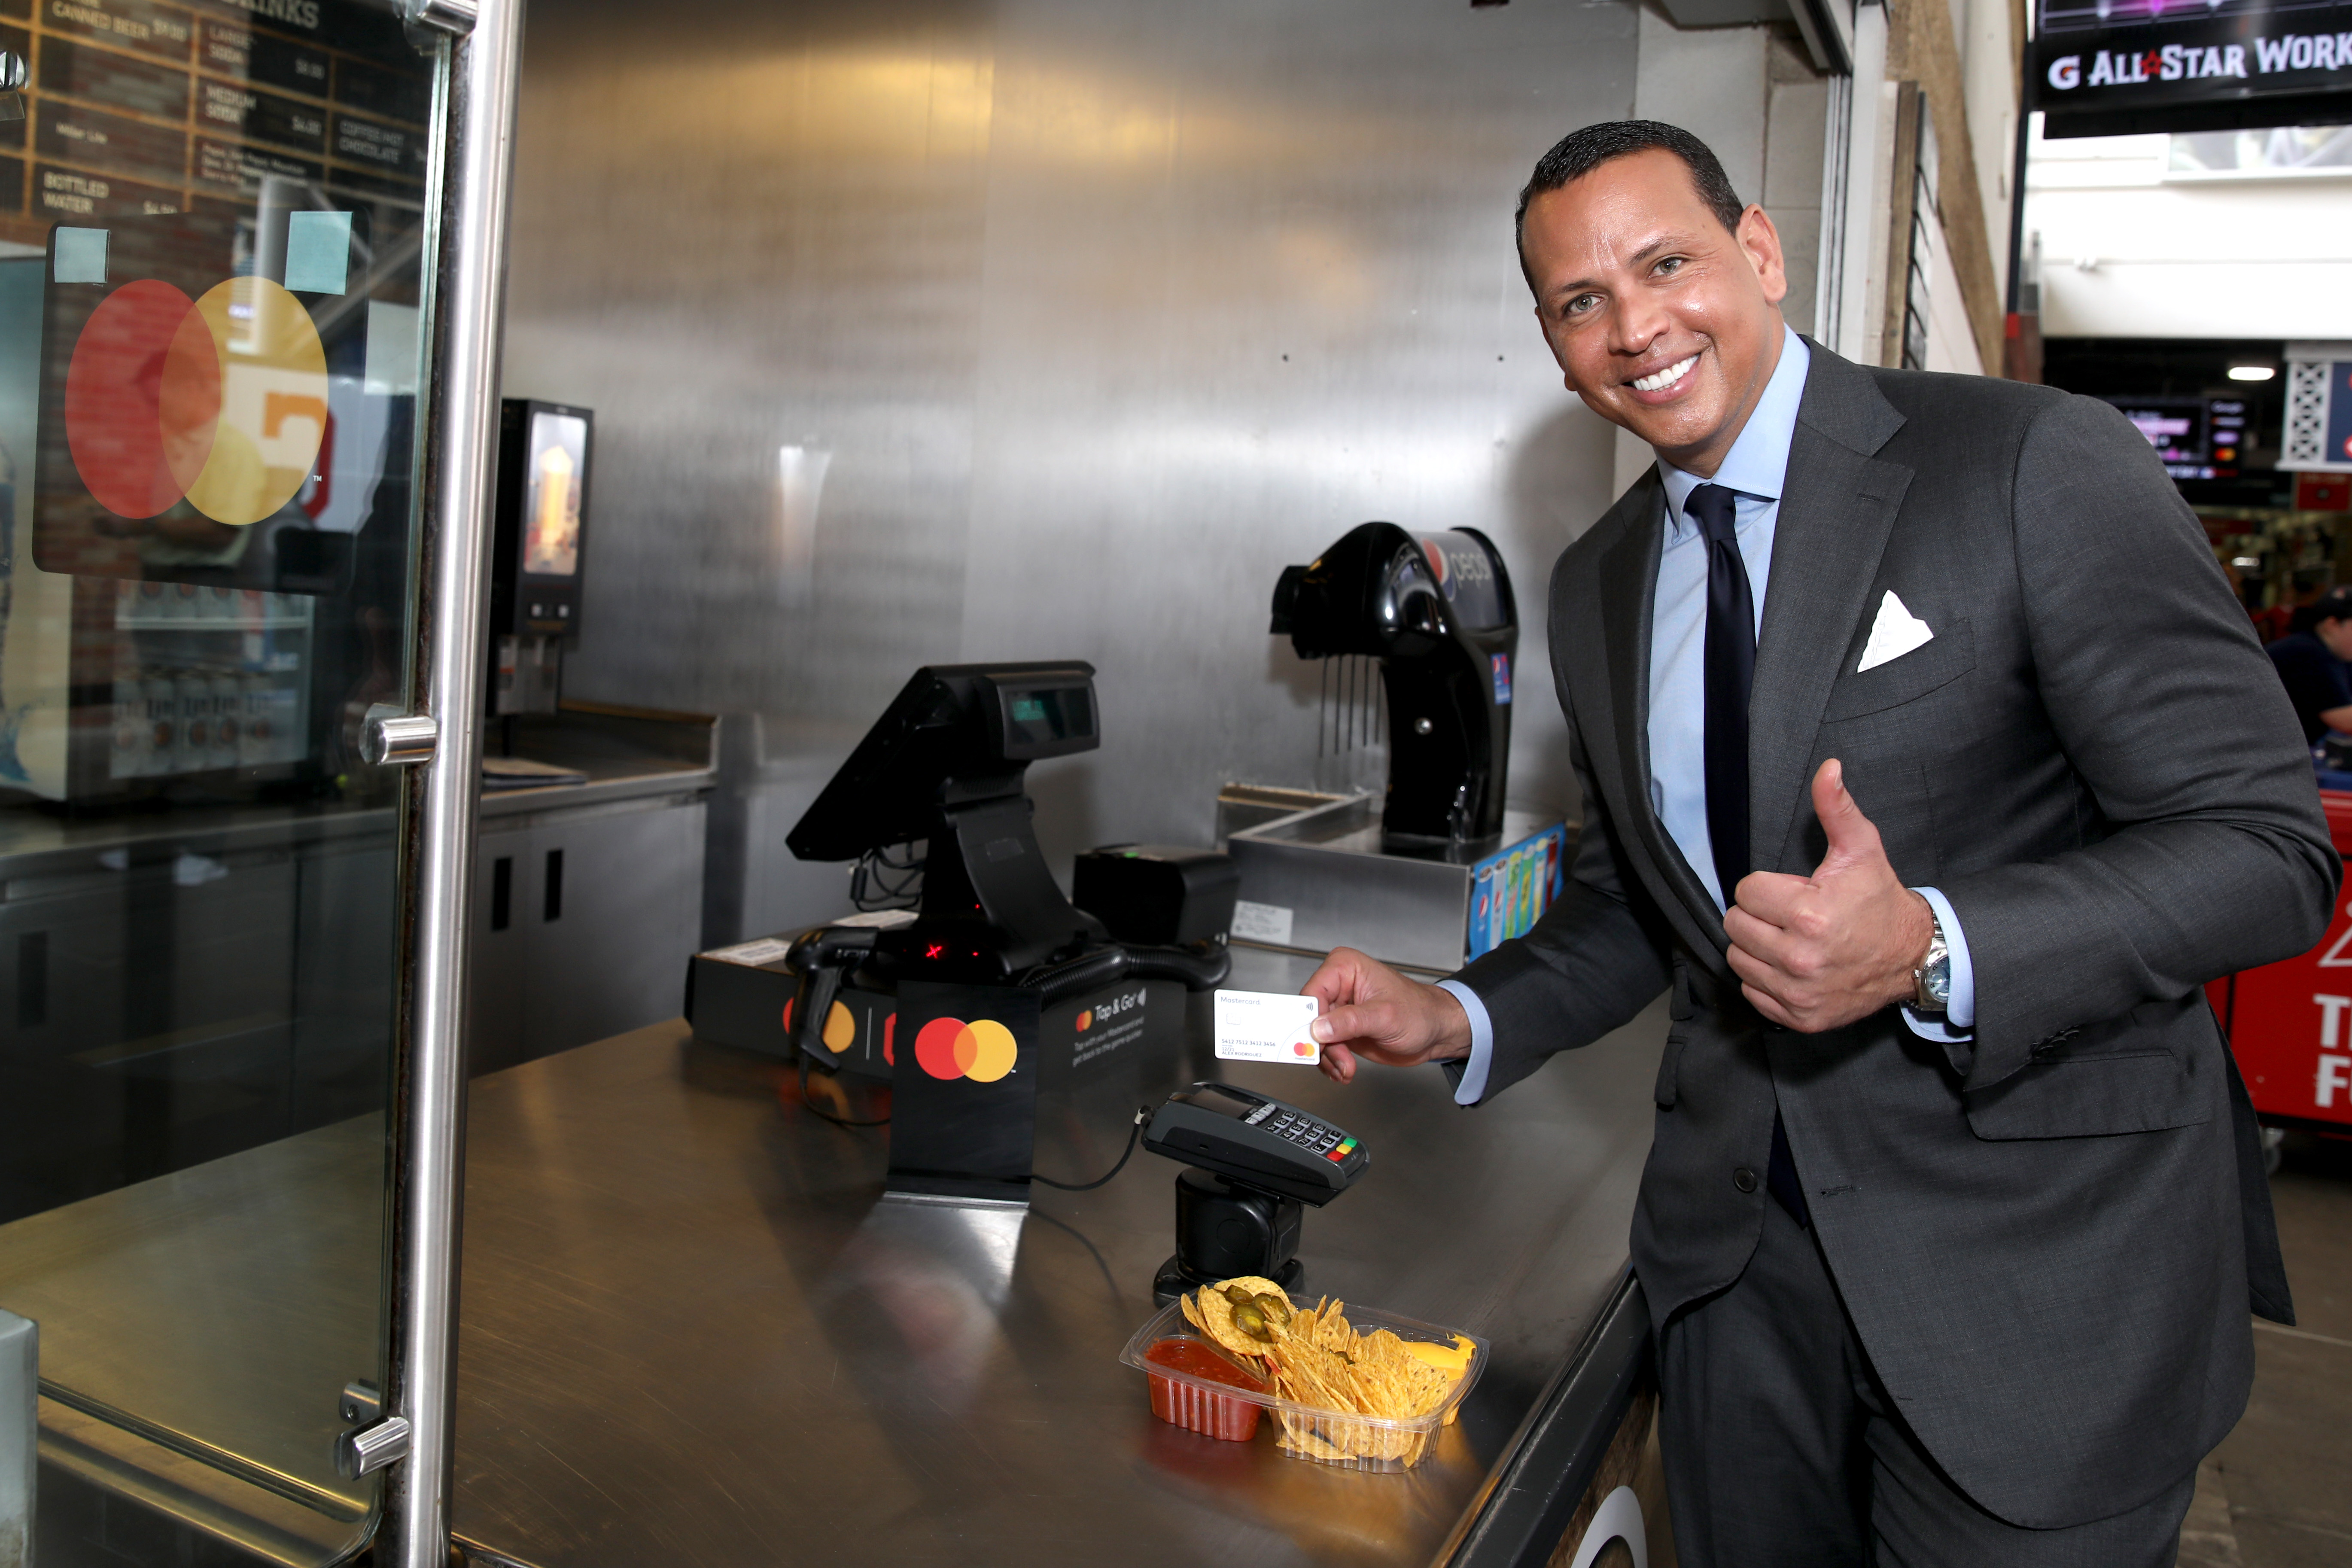 During All-Star Week, Alex Rodriguez is making some time to Start Something Priceless and hoping others will too. Dine out with family and friends this summer and use your Mastercard and you'll help support Stand Up To Cancer. - July 8th 2019 in Cleveland, OH